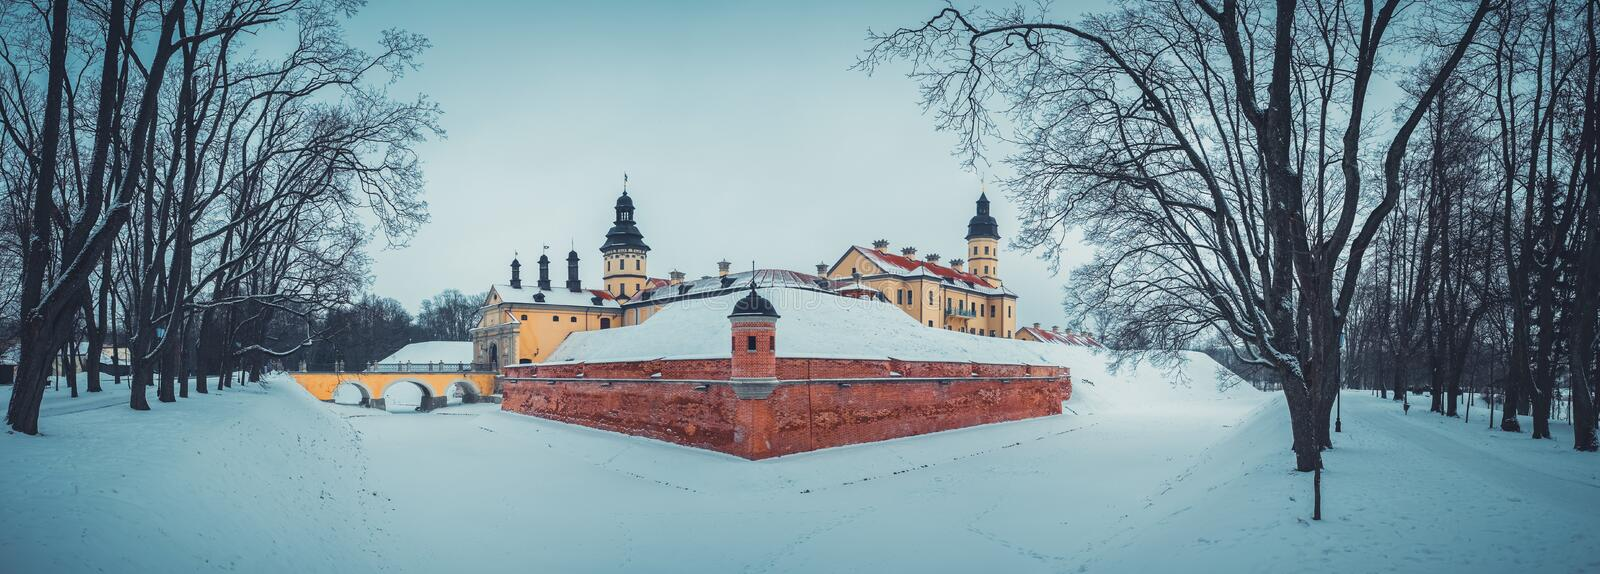 Park in Nesvizh city at winter, Belarus. royalty free stock images